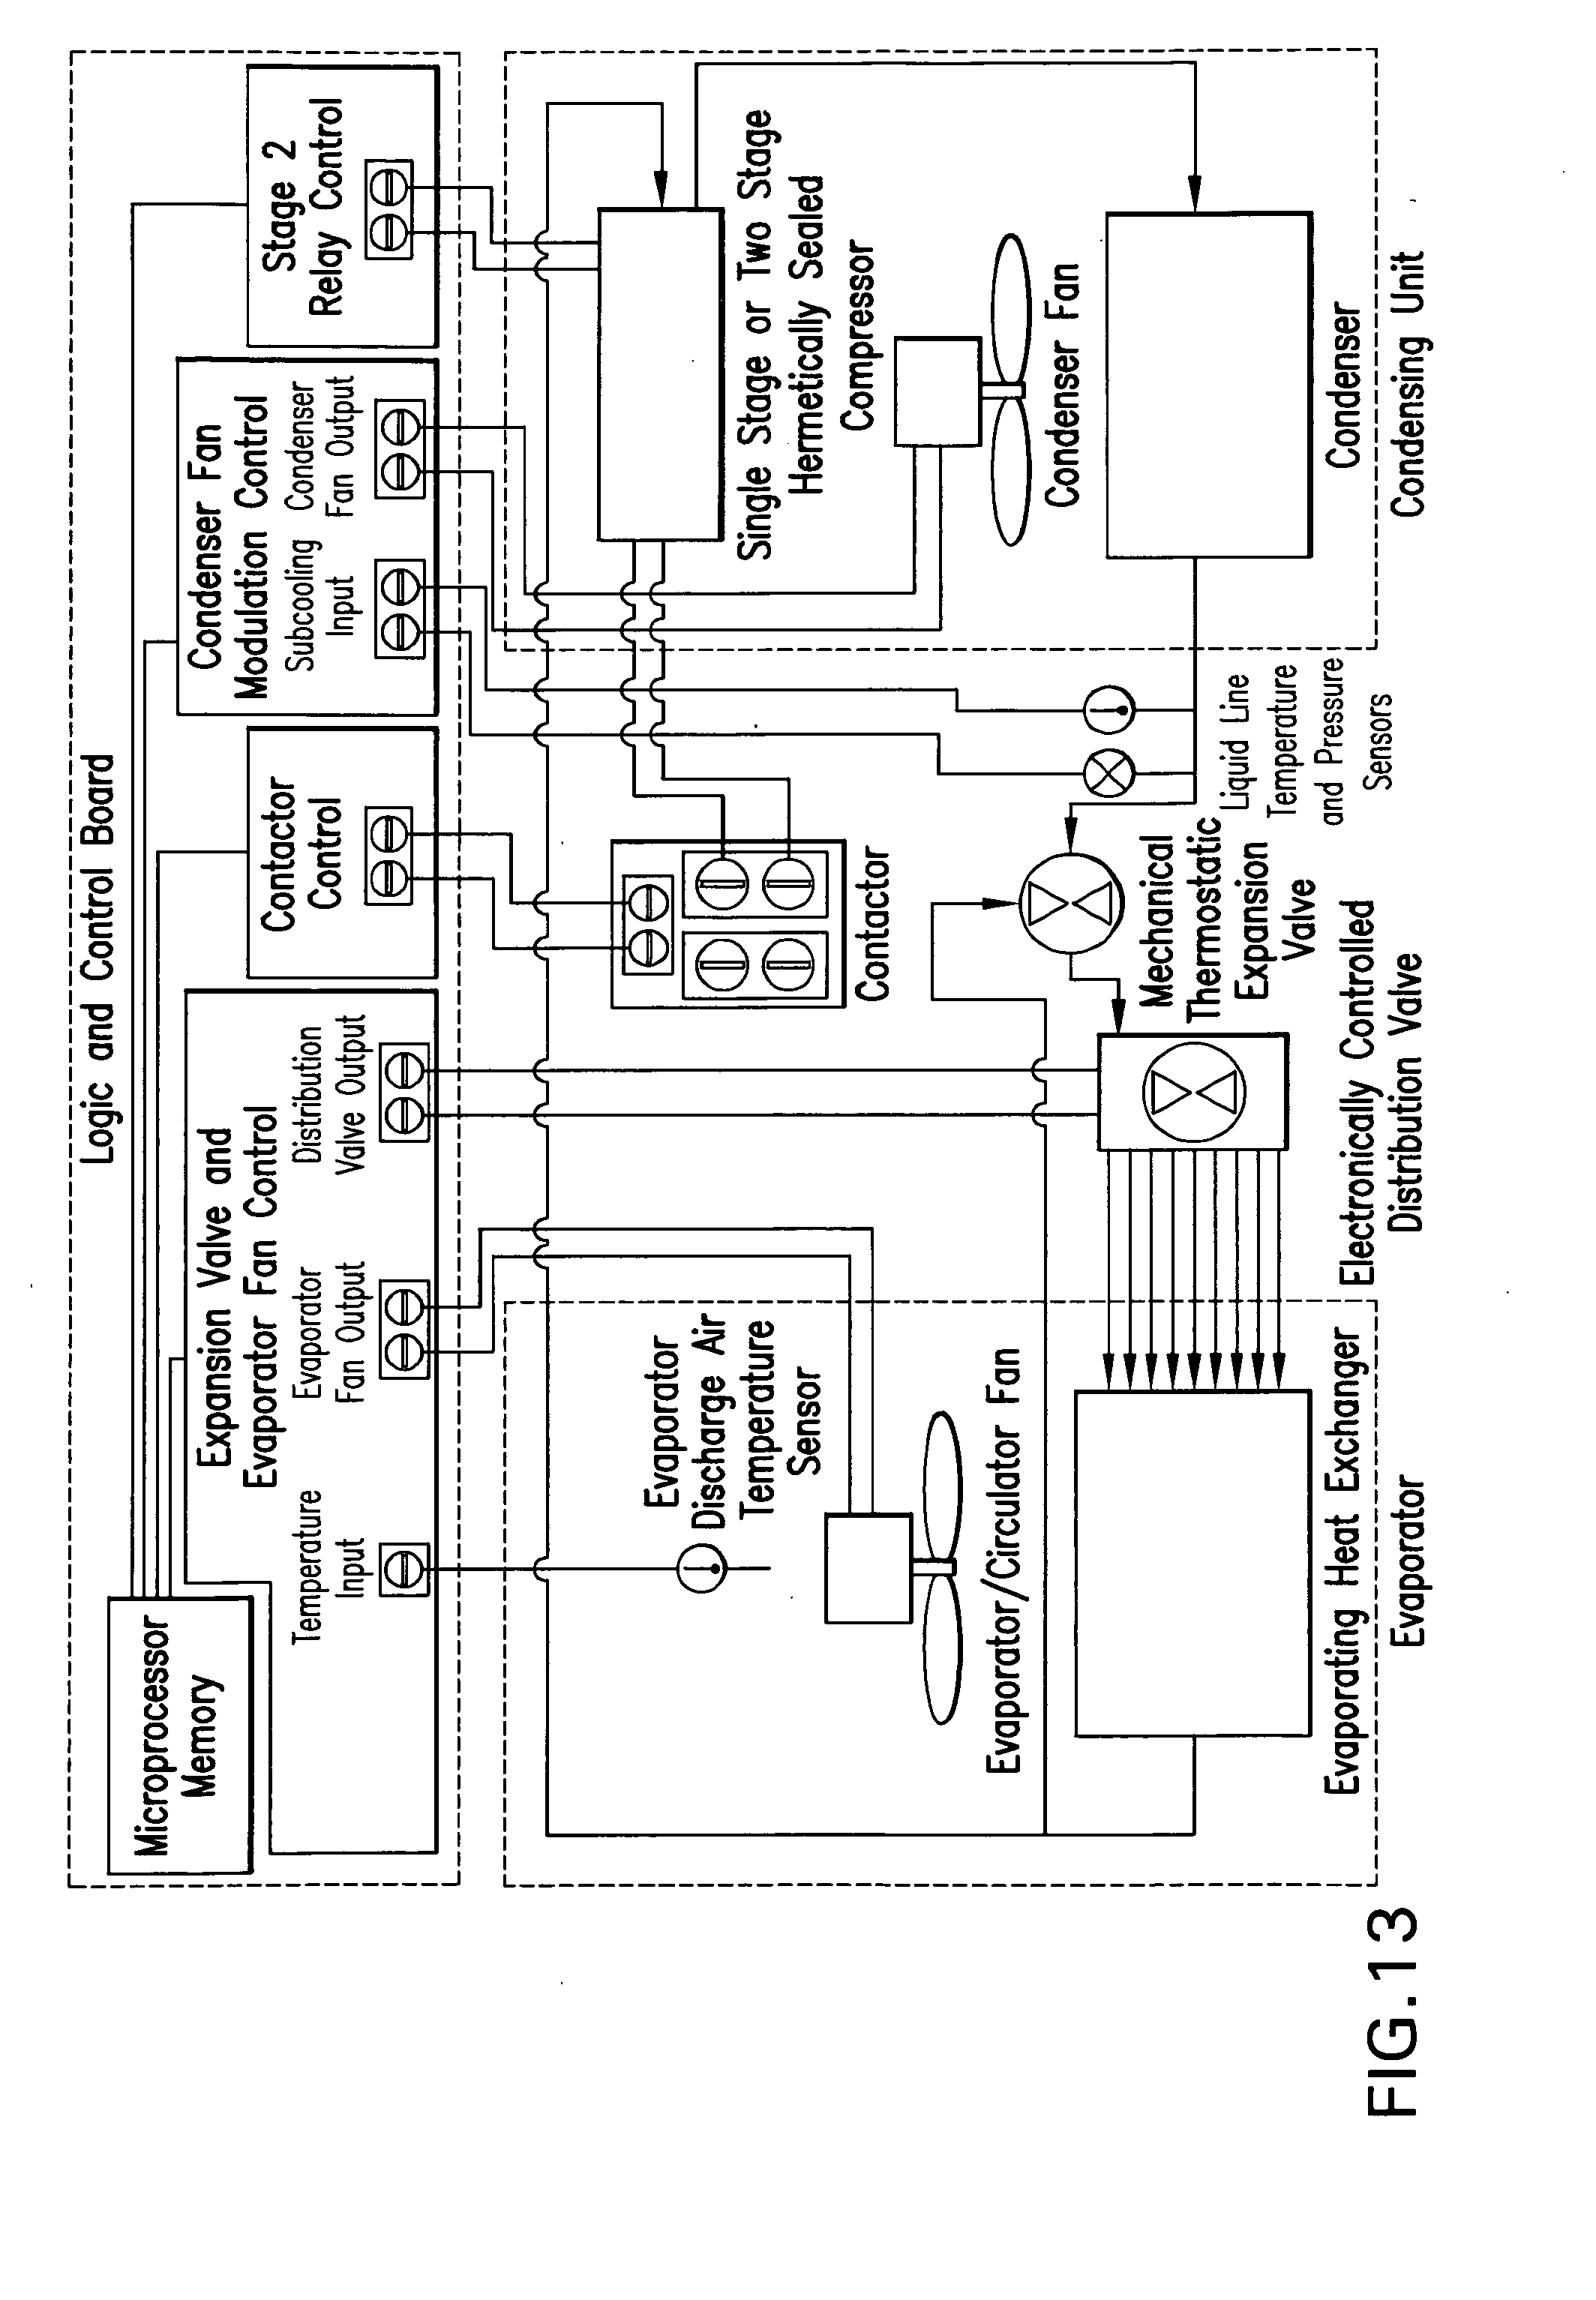 honeywell rth3100c thermostat wiring diagram with Port A Cool Evaporator Fan Wiring Diagram on Honeywell Thermostat Diagram Wiring together with Trane Heat Pump Wiring Diagram as well Honeywell Room Thermostat Wiring Diagram together with Taco Old Circulator Wiring Diagram besides Honeywell Round Thermostat Wiring Diagram.